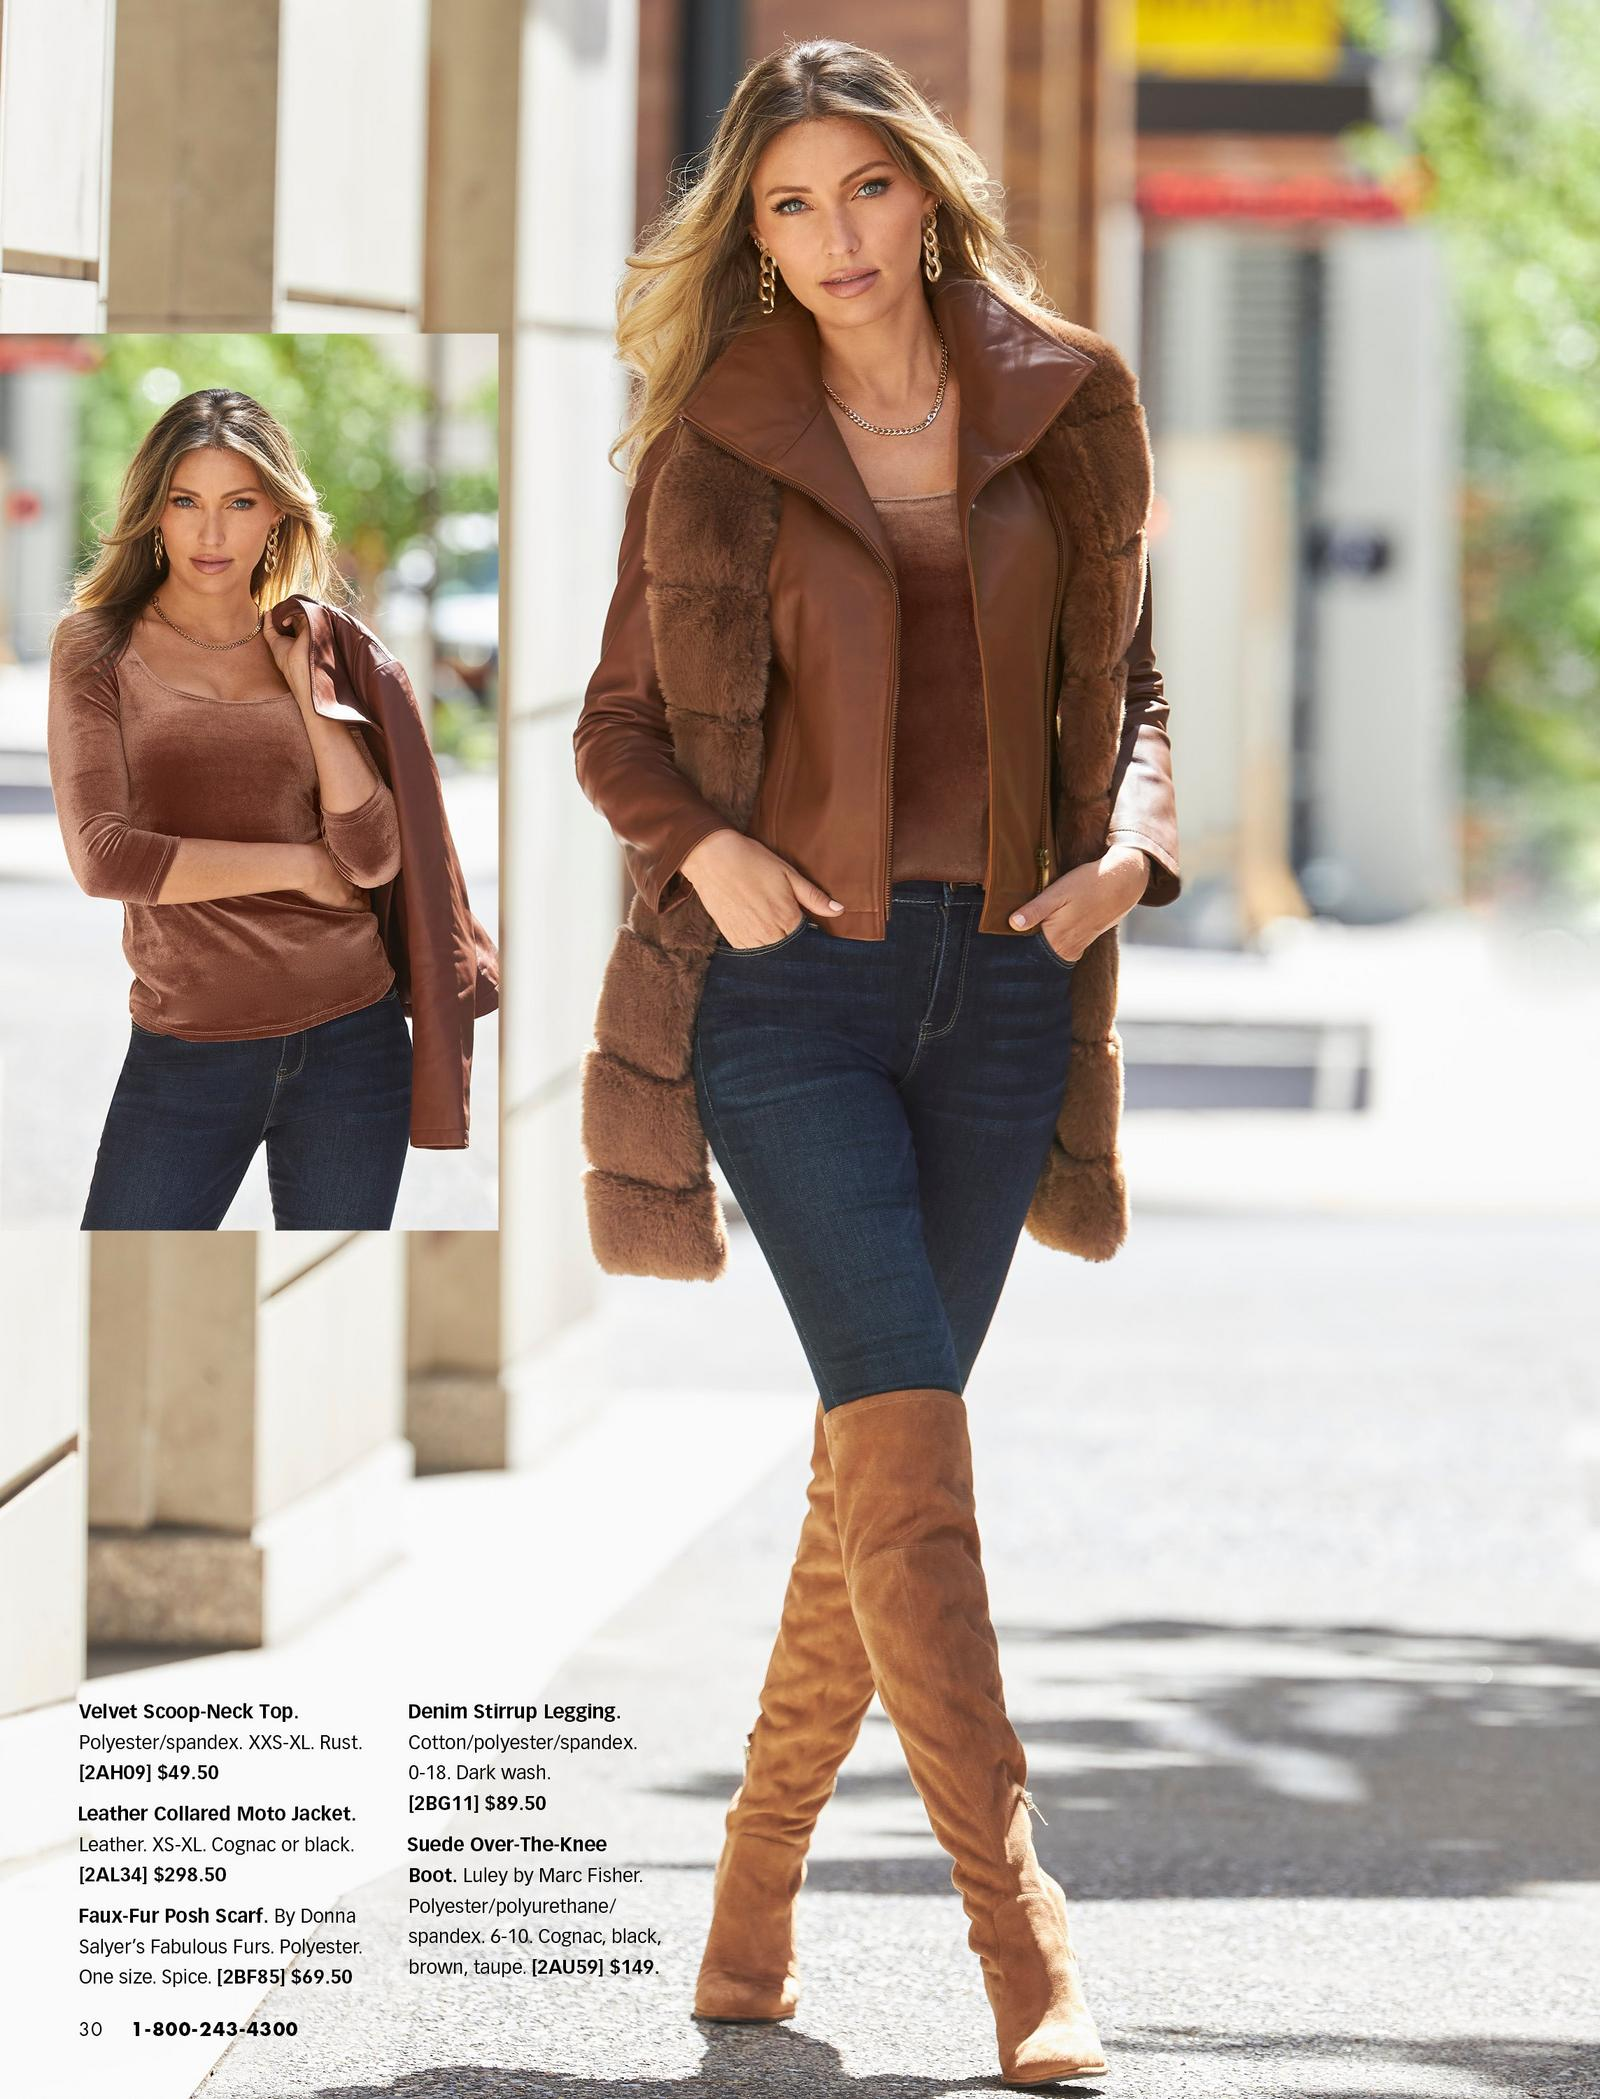 left model wearing a brown velvet scoop-neck three-quarter sleeve top and jeans while holding a brown leather jacket. right model wearing a brown velvet scoop-neck three-quarter sleeve top, brown leather collared moto jacket, faux-fur brown scarf, jeans, and over-the-knee brown suede boots.